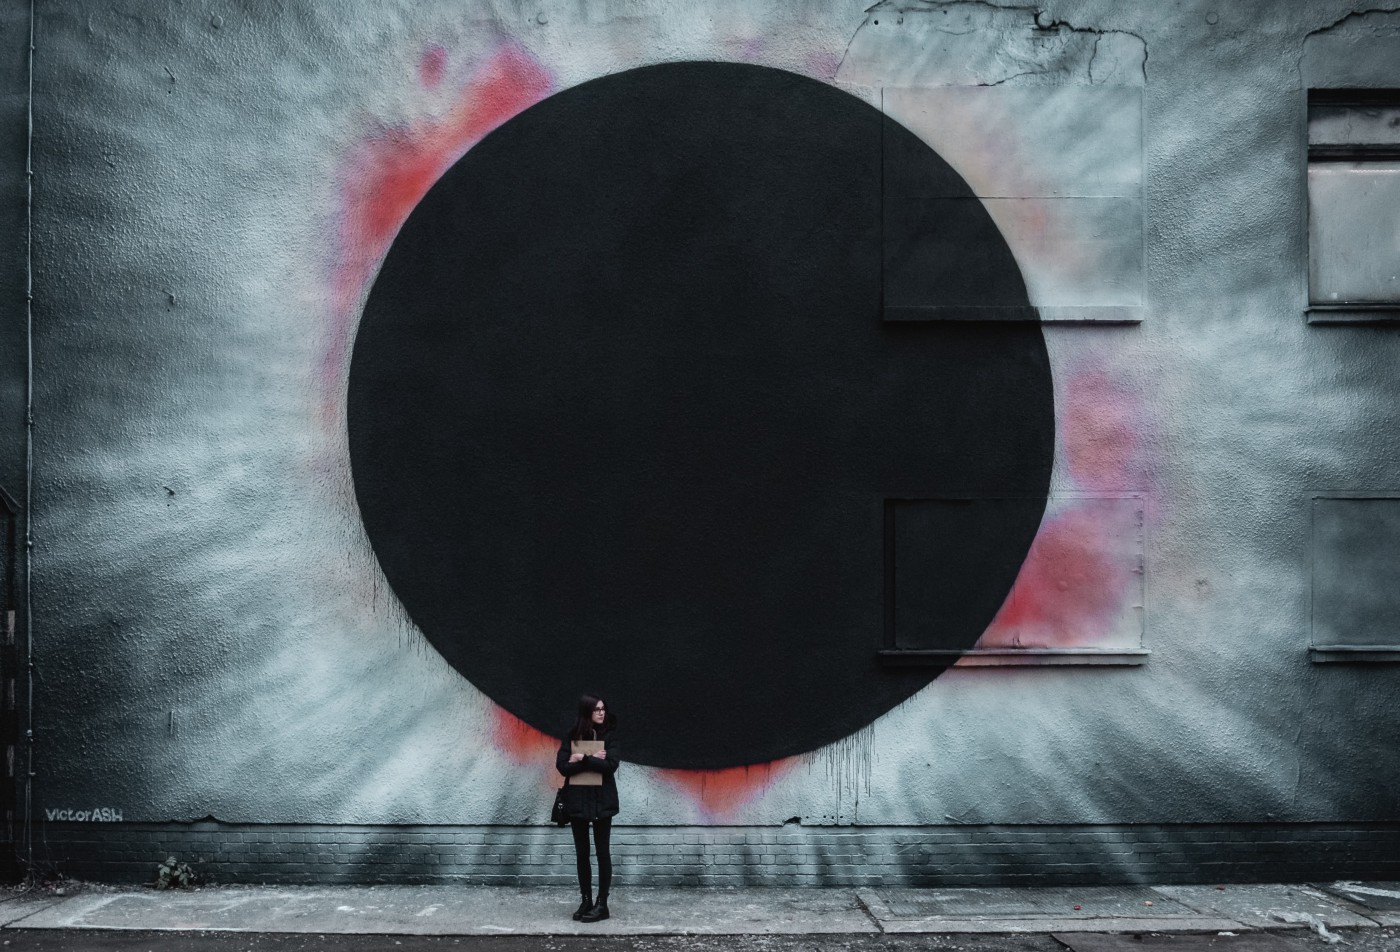 A girl standing in front of a gray wall painted with a large black circle